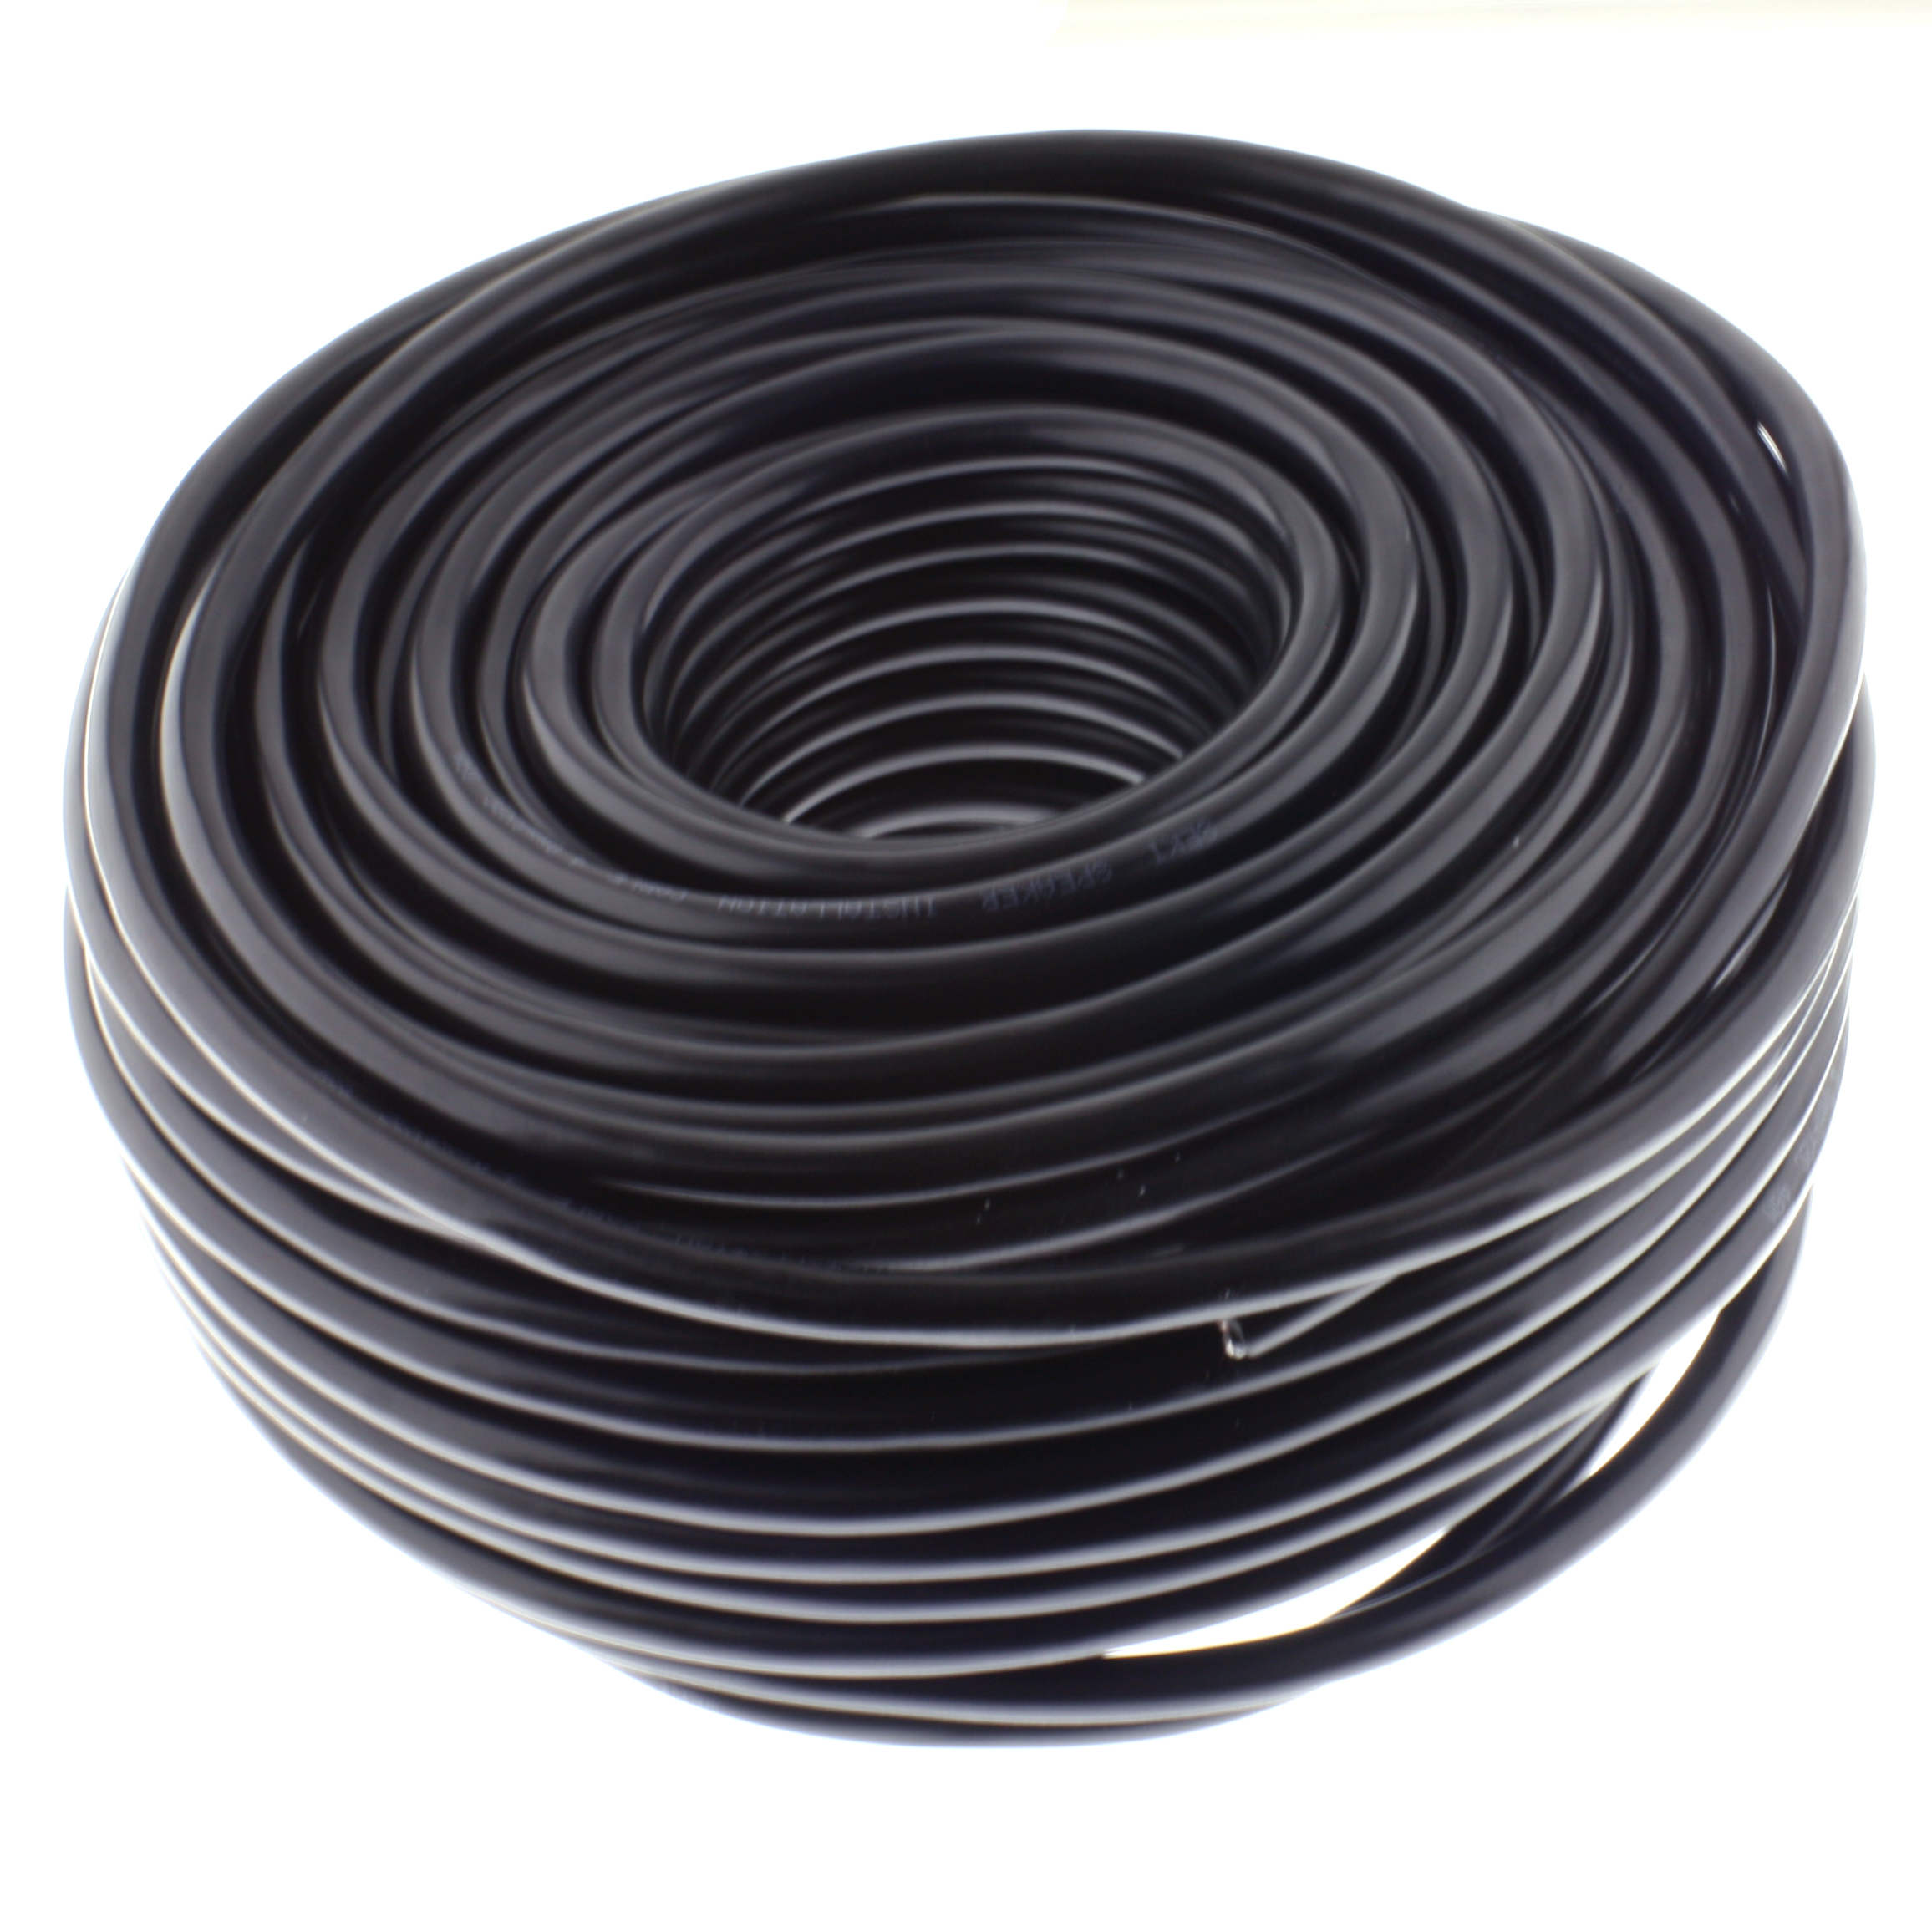 Loudspeaker cable ROUND 4,00mm, CCA, 50M, black